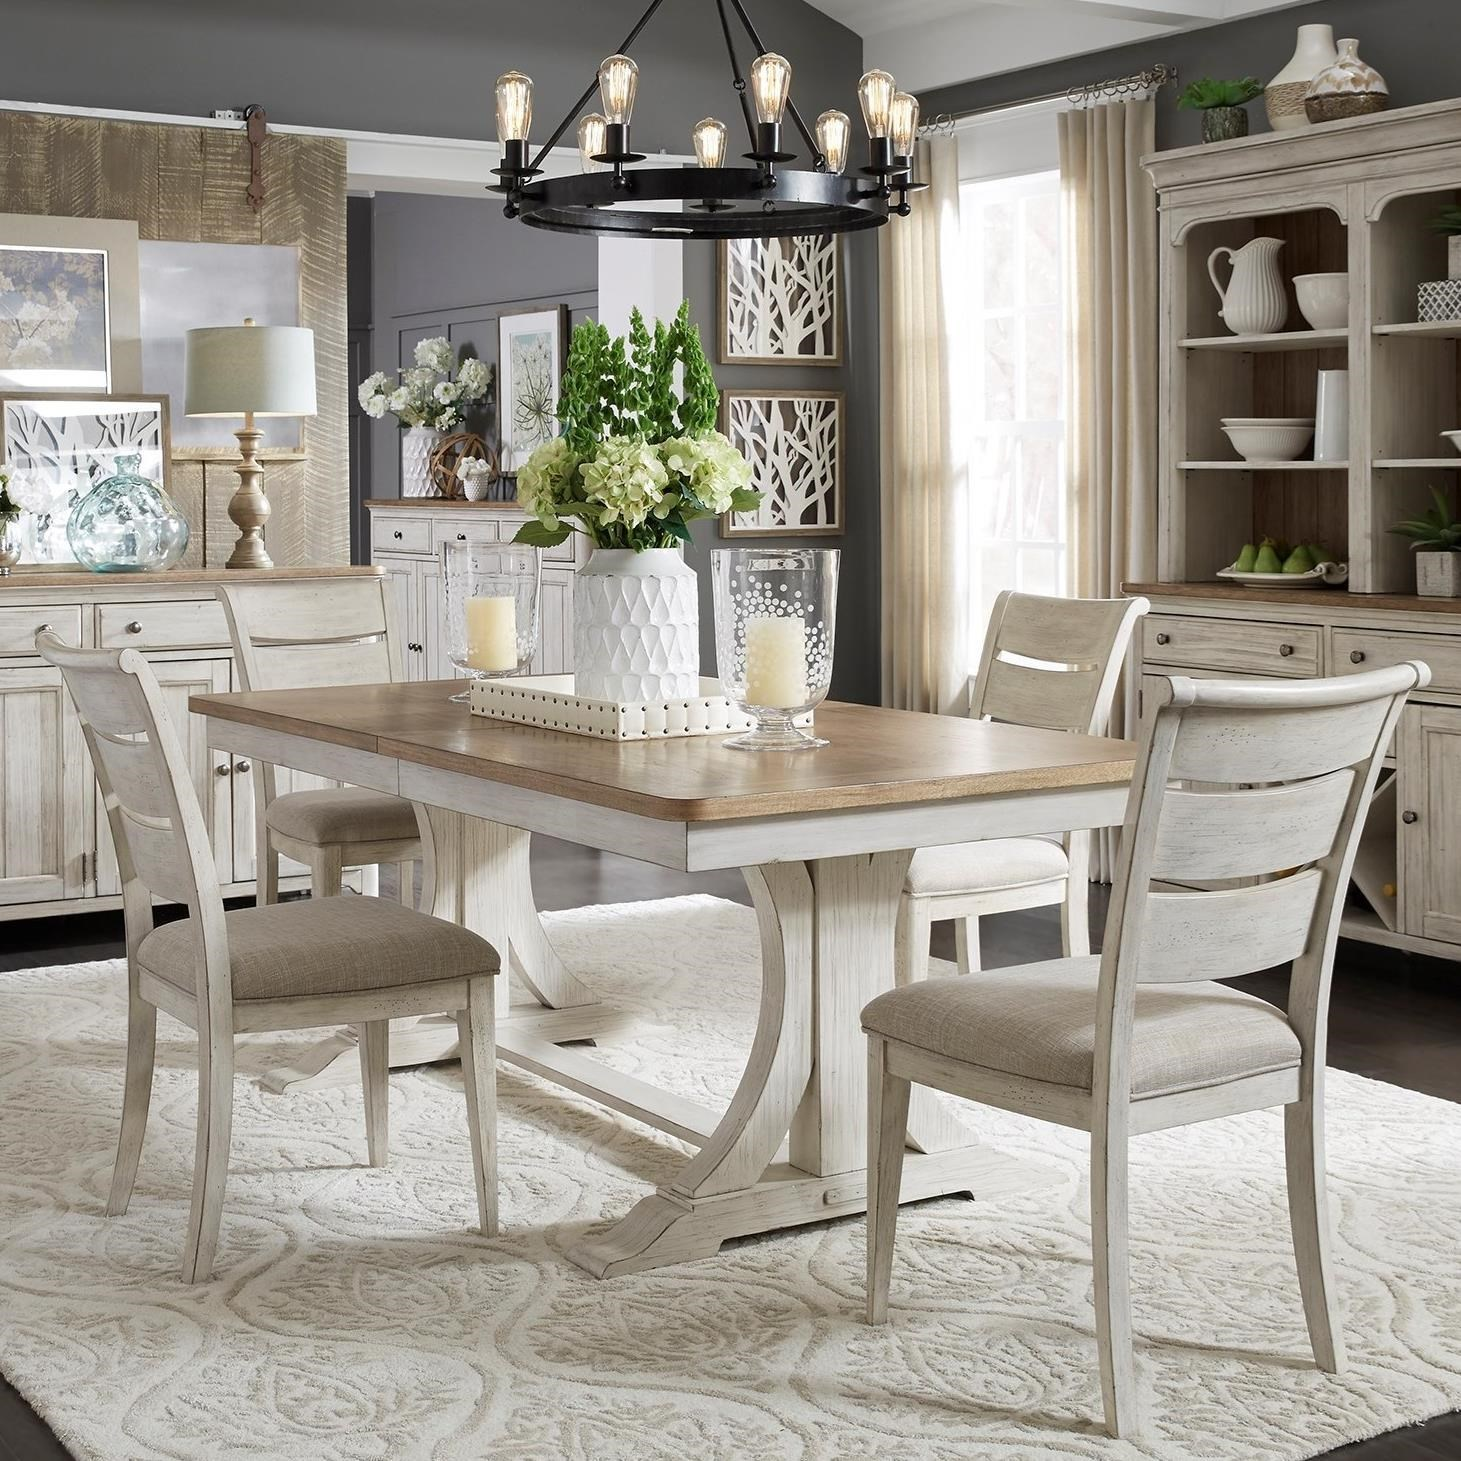 Liberty Furniture Farmhouse Reimagined Relaxed Vintage 5-Piece Trestle Table Set  sc 1 st  Lindy\u0027s Furniture Company & Liberty Furniture Farmhouse Reimagined Relaxed Vintage 5-Piece ...